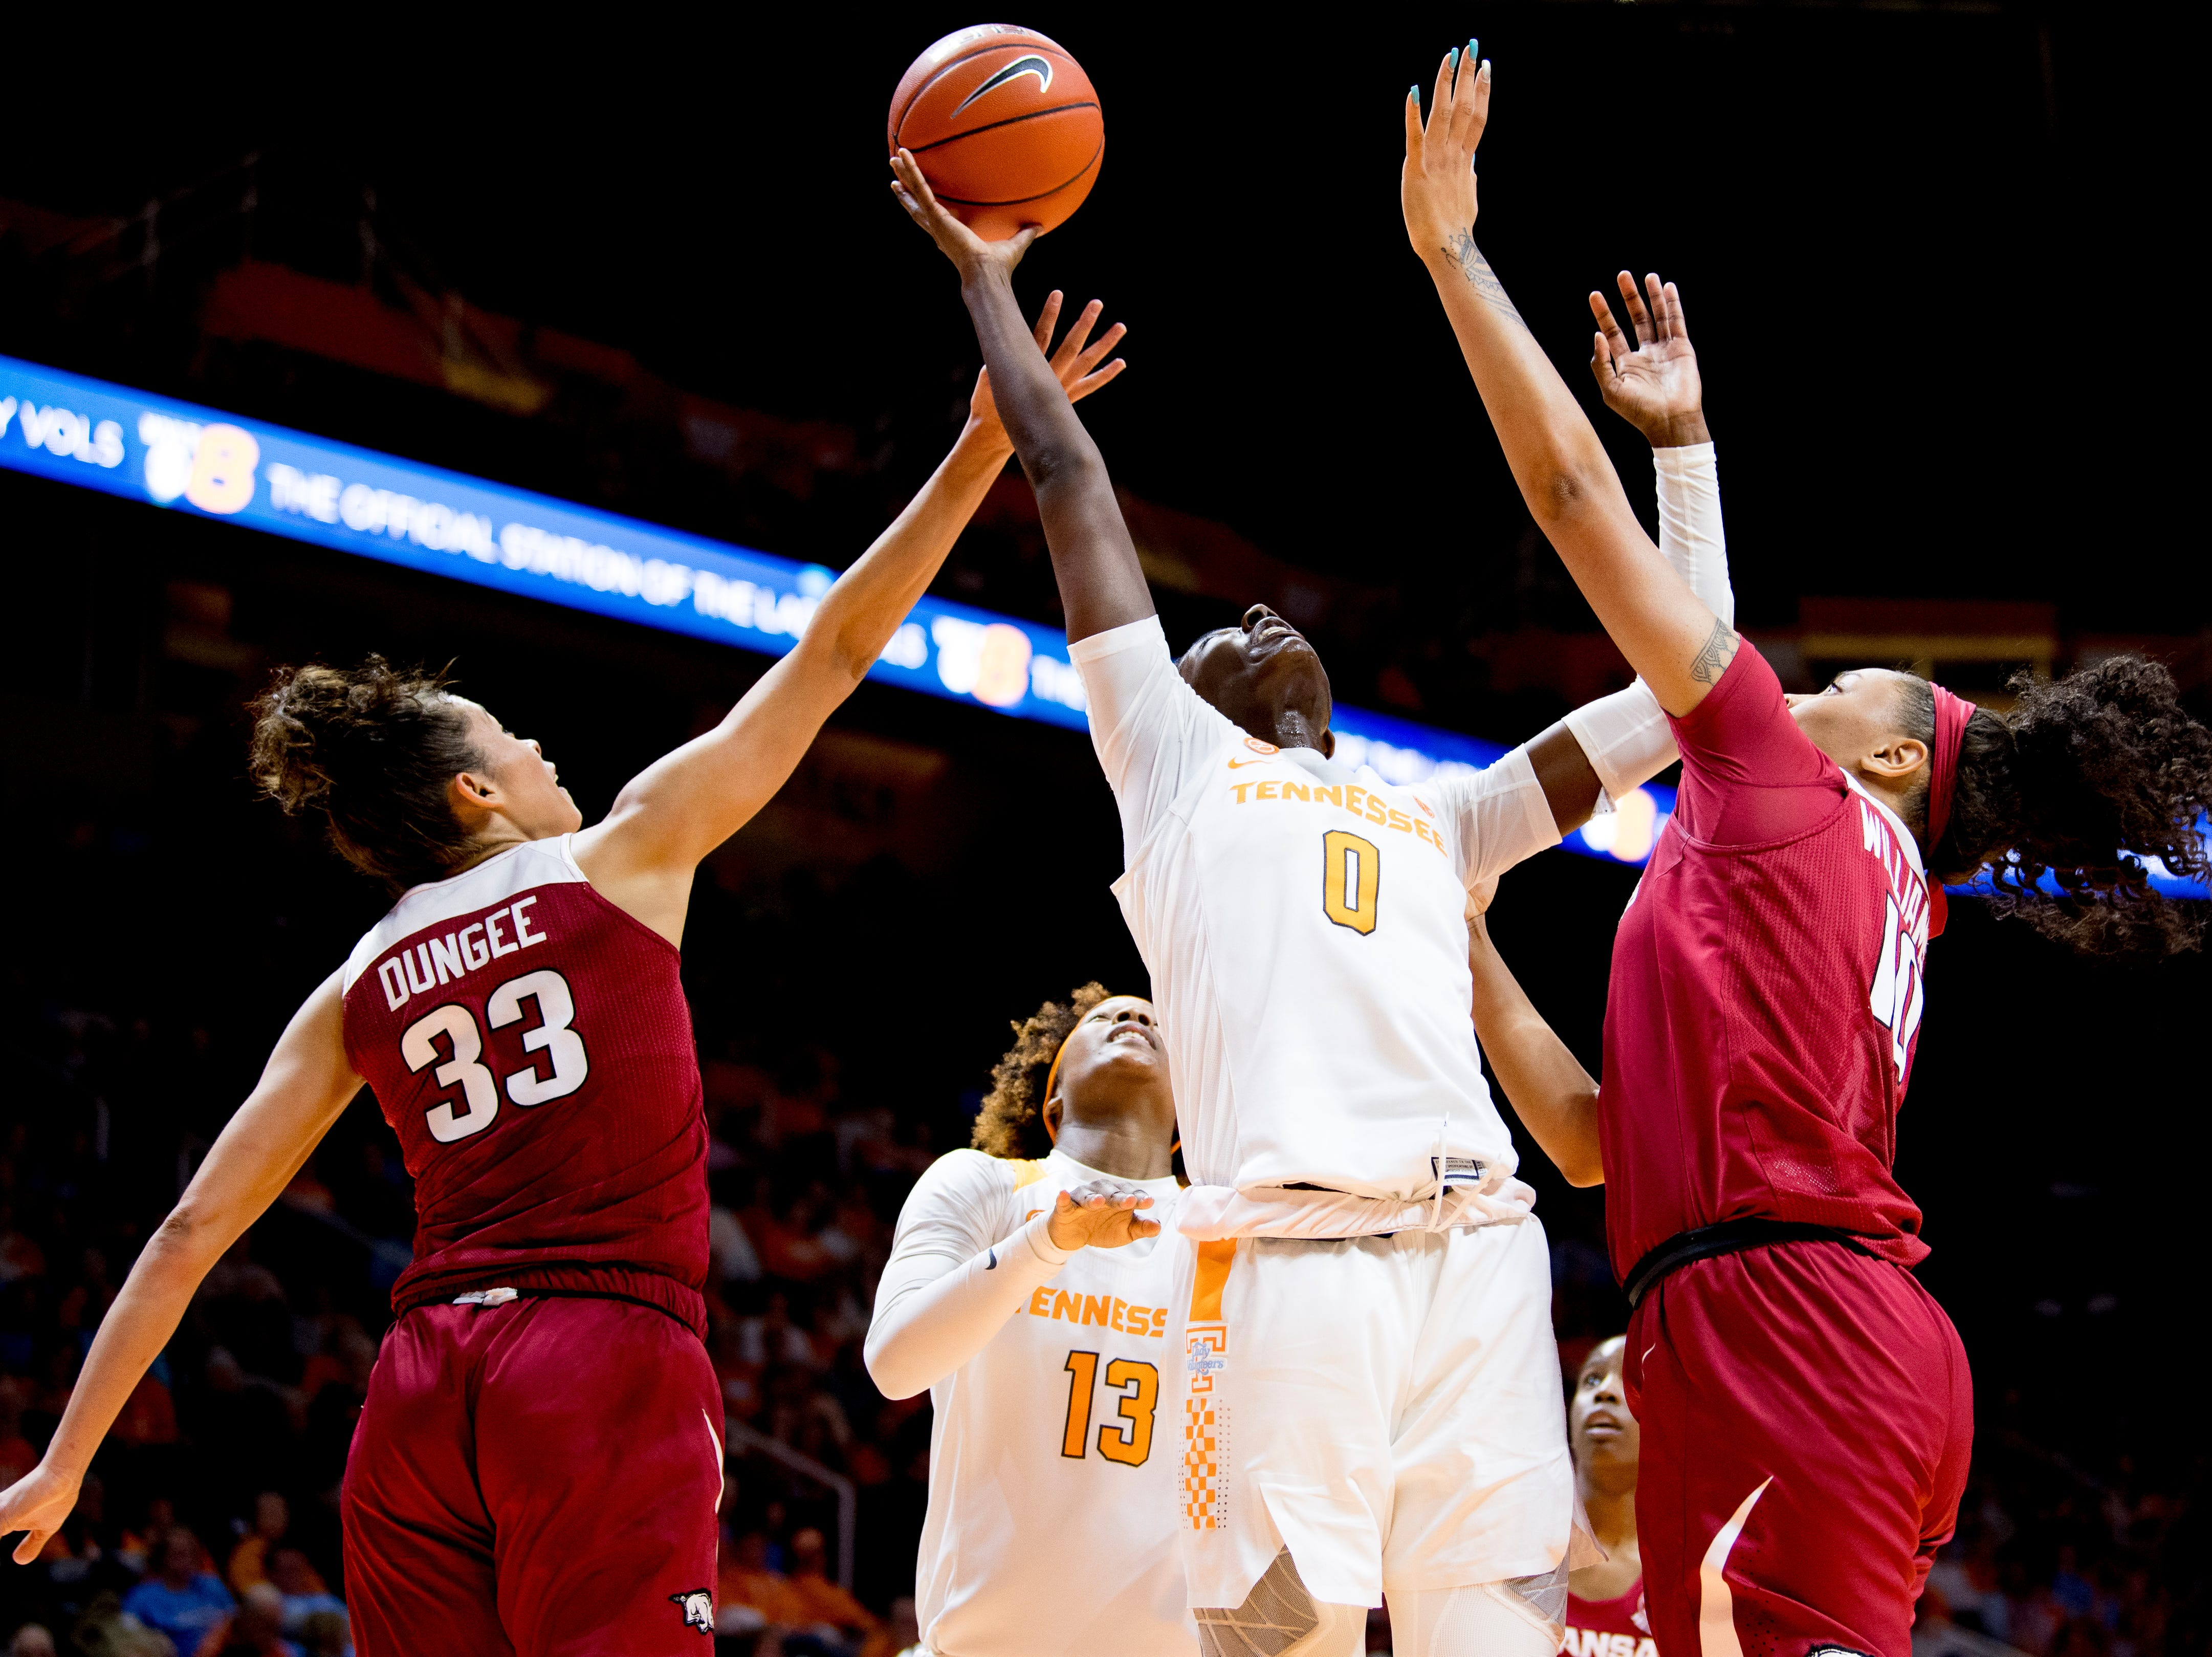 Tennessee guard/forward Rennia Davis (0) shoots a layup past the defense during a game between Tennessee and Arkansas at Thompson-Boling Arena in , Tennessee on Monday, January 21, 2019.